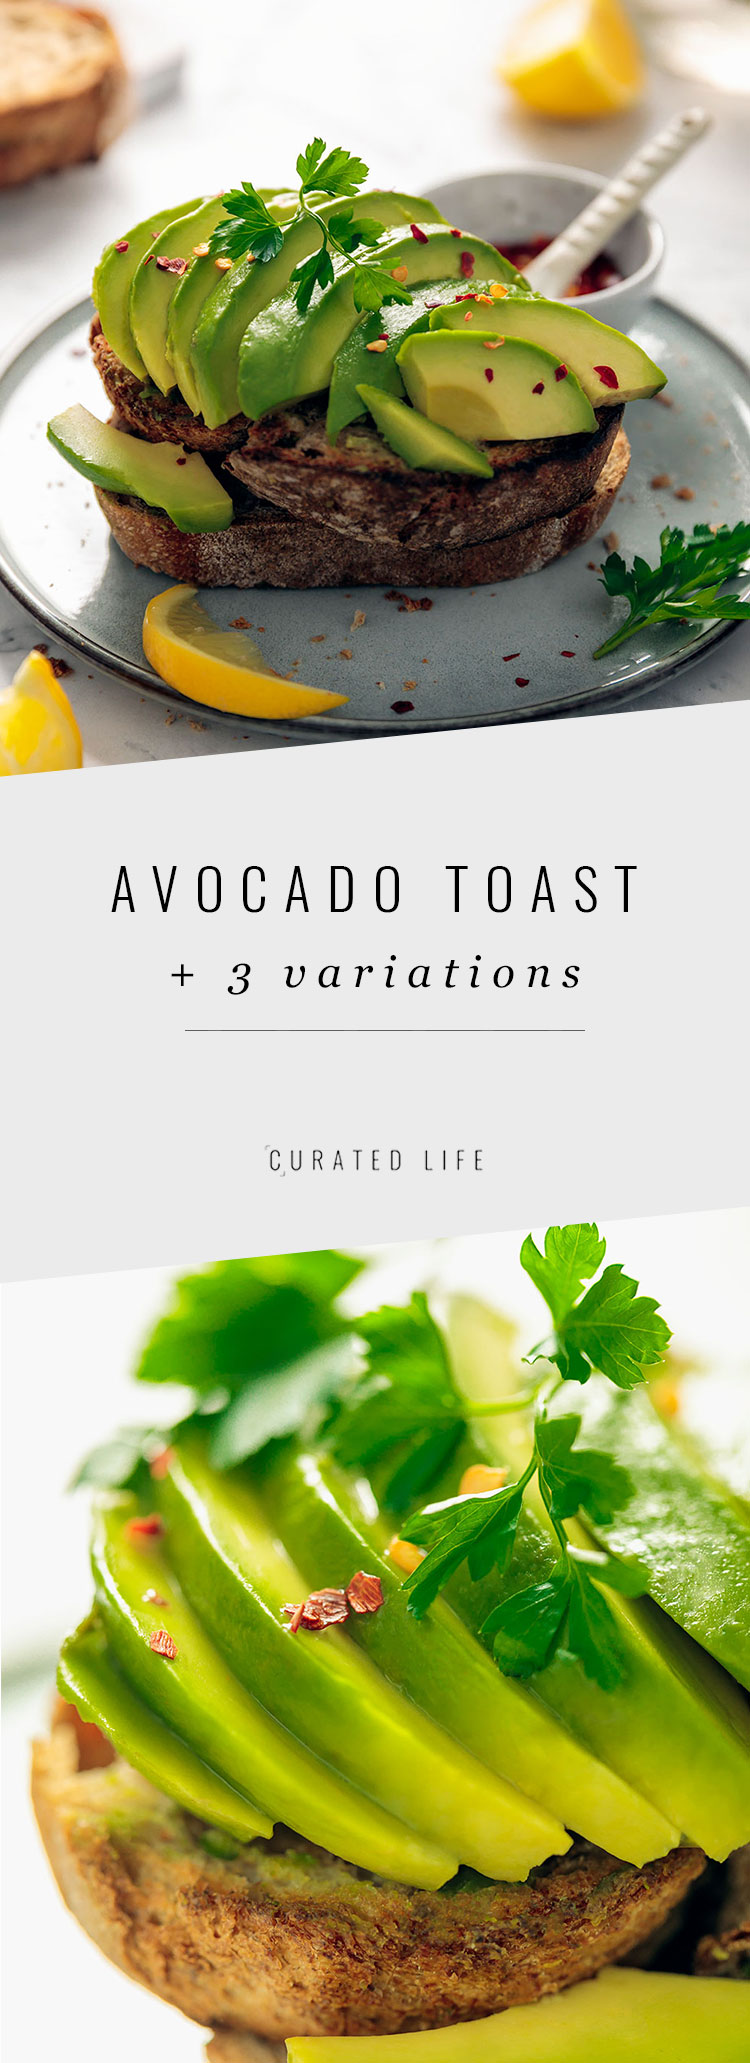 How to make Healthy Avocado Toast with 3 Variations!  Vegan, simple and a perfect recipe for breakfast!  #curatedlifestudio #avocado #toast #healthy #simple #easy #vegan #variation #toppings